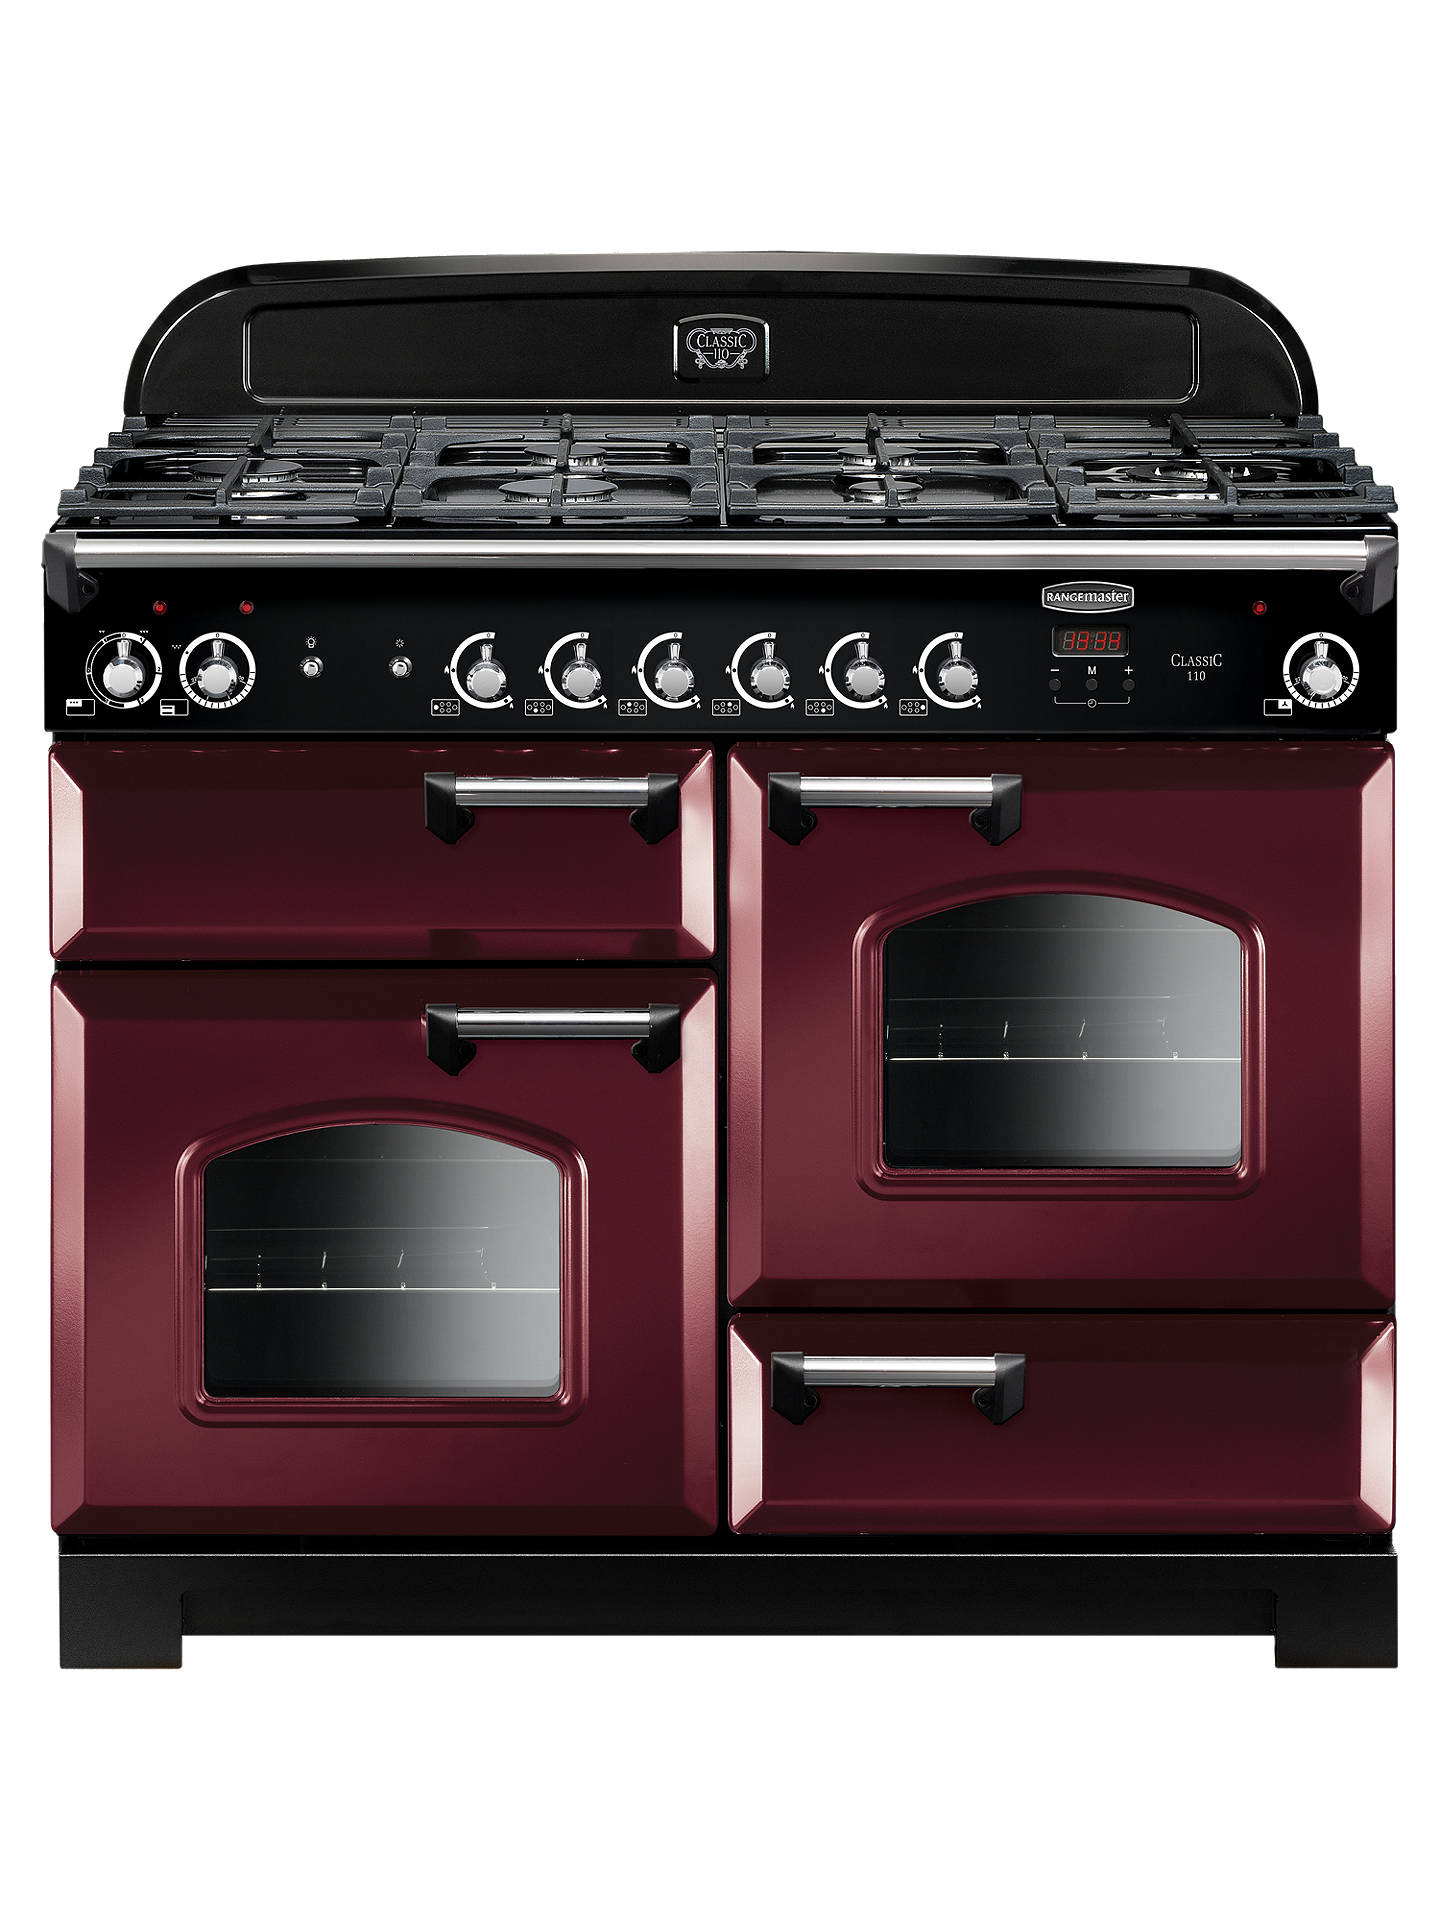 Buy Rangemaster Classic 110 Dual Fuel Range Cooker, Cranberry Online at johnlewis.com